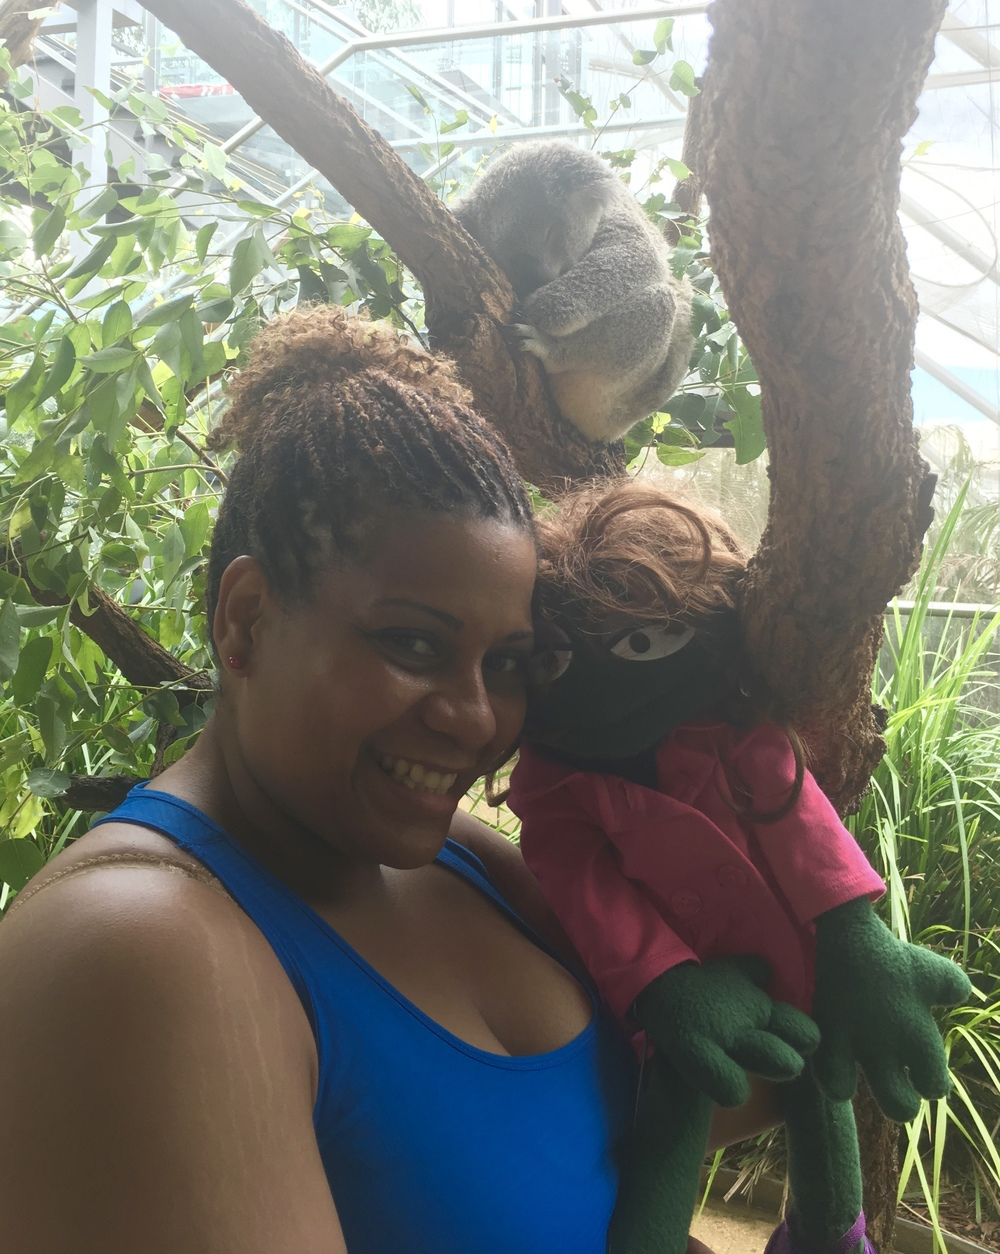 So...ummm...yeah not much excitement on this trip. Just a girl and her frog.  Well, and a koala bear. Totally normal, right?